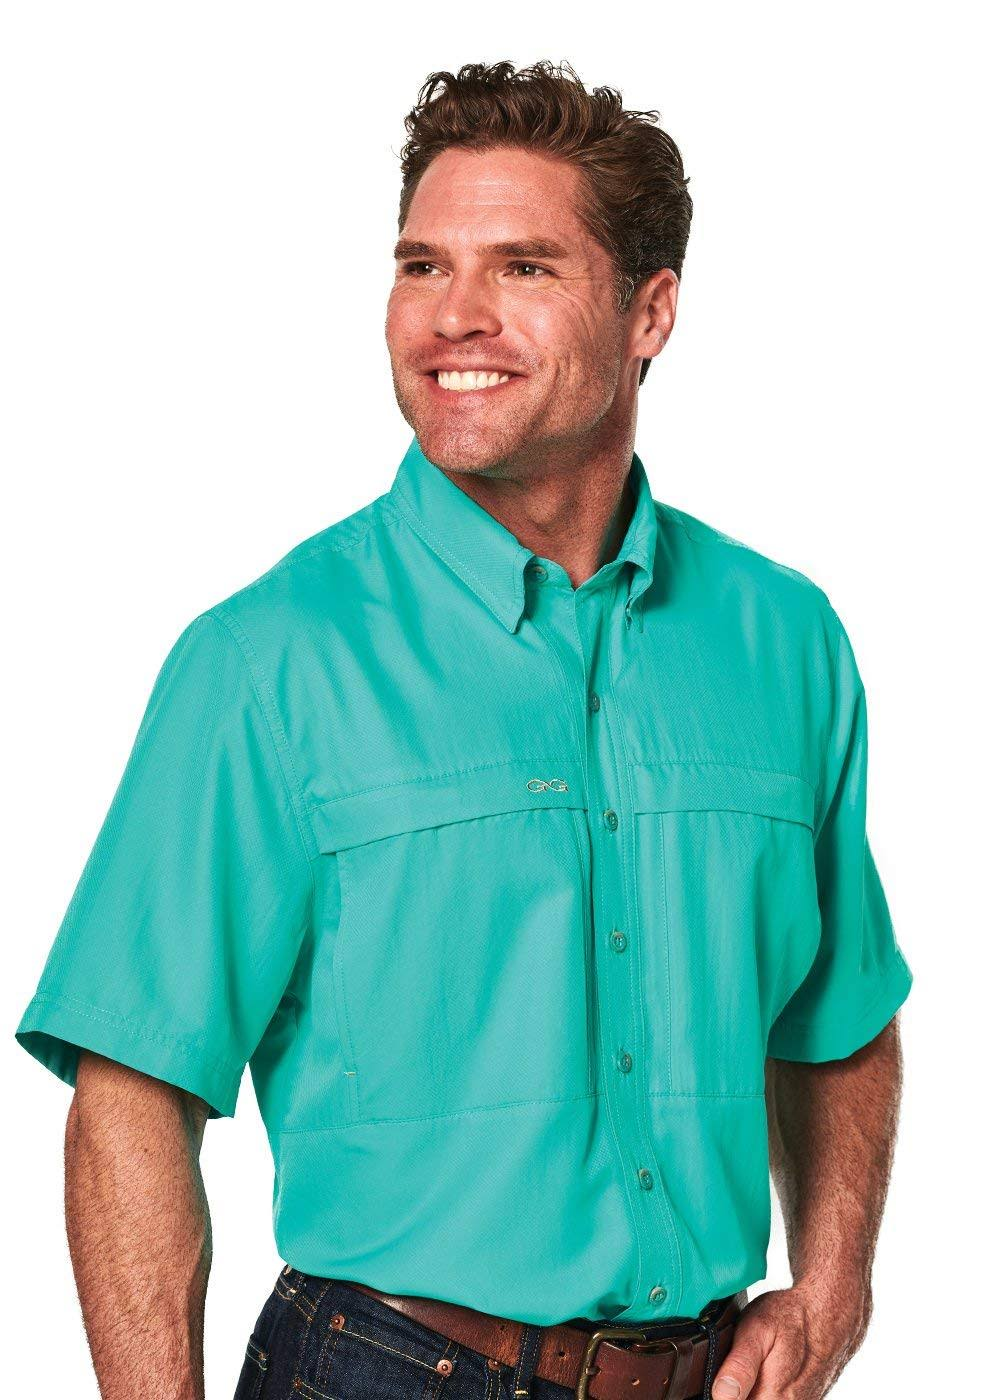 GameGuard Microfiber Short-Sleeve Shirt- Men's